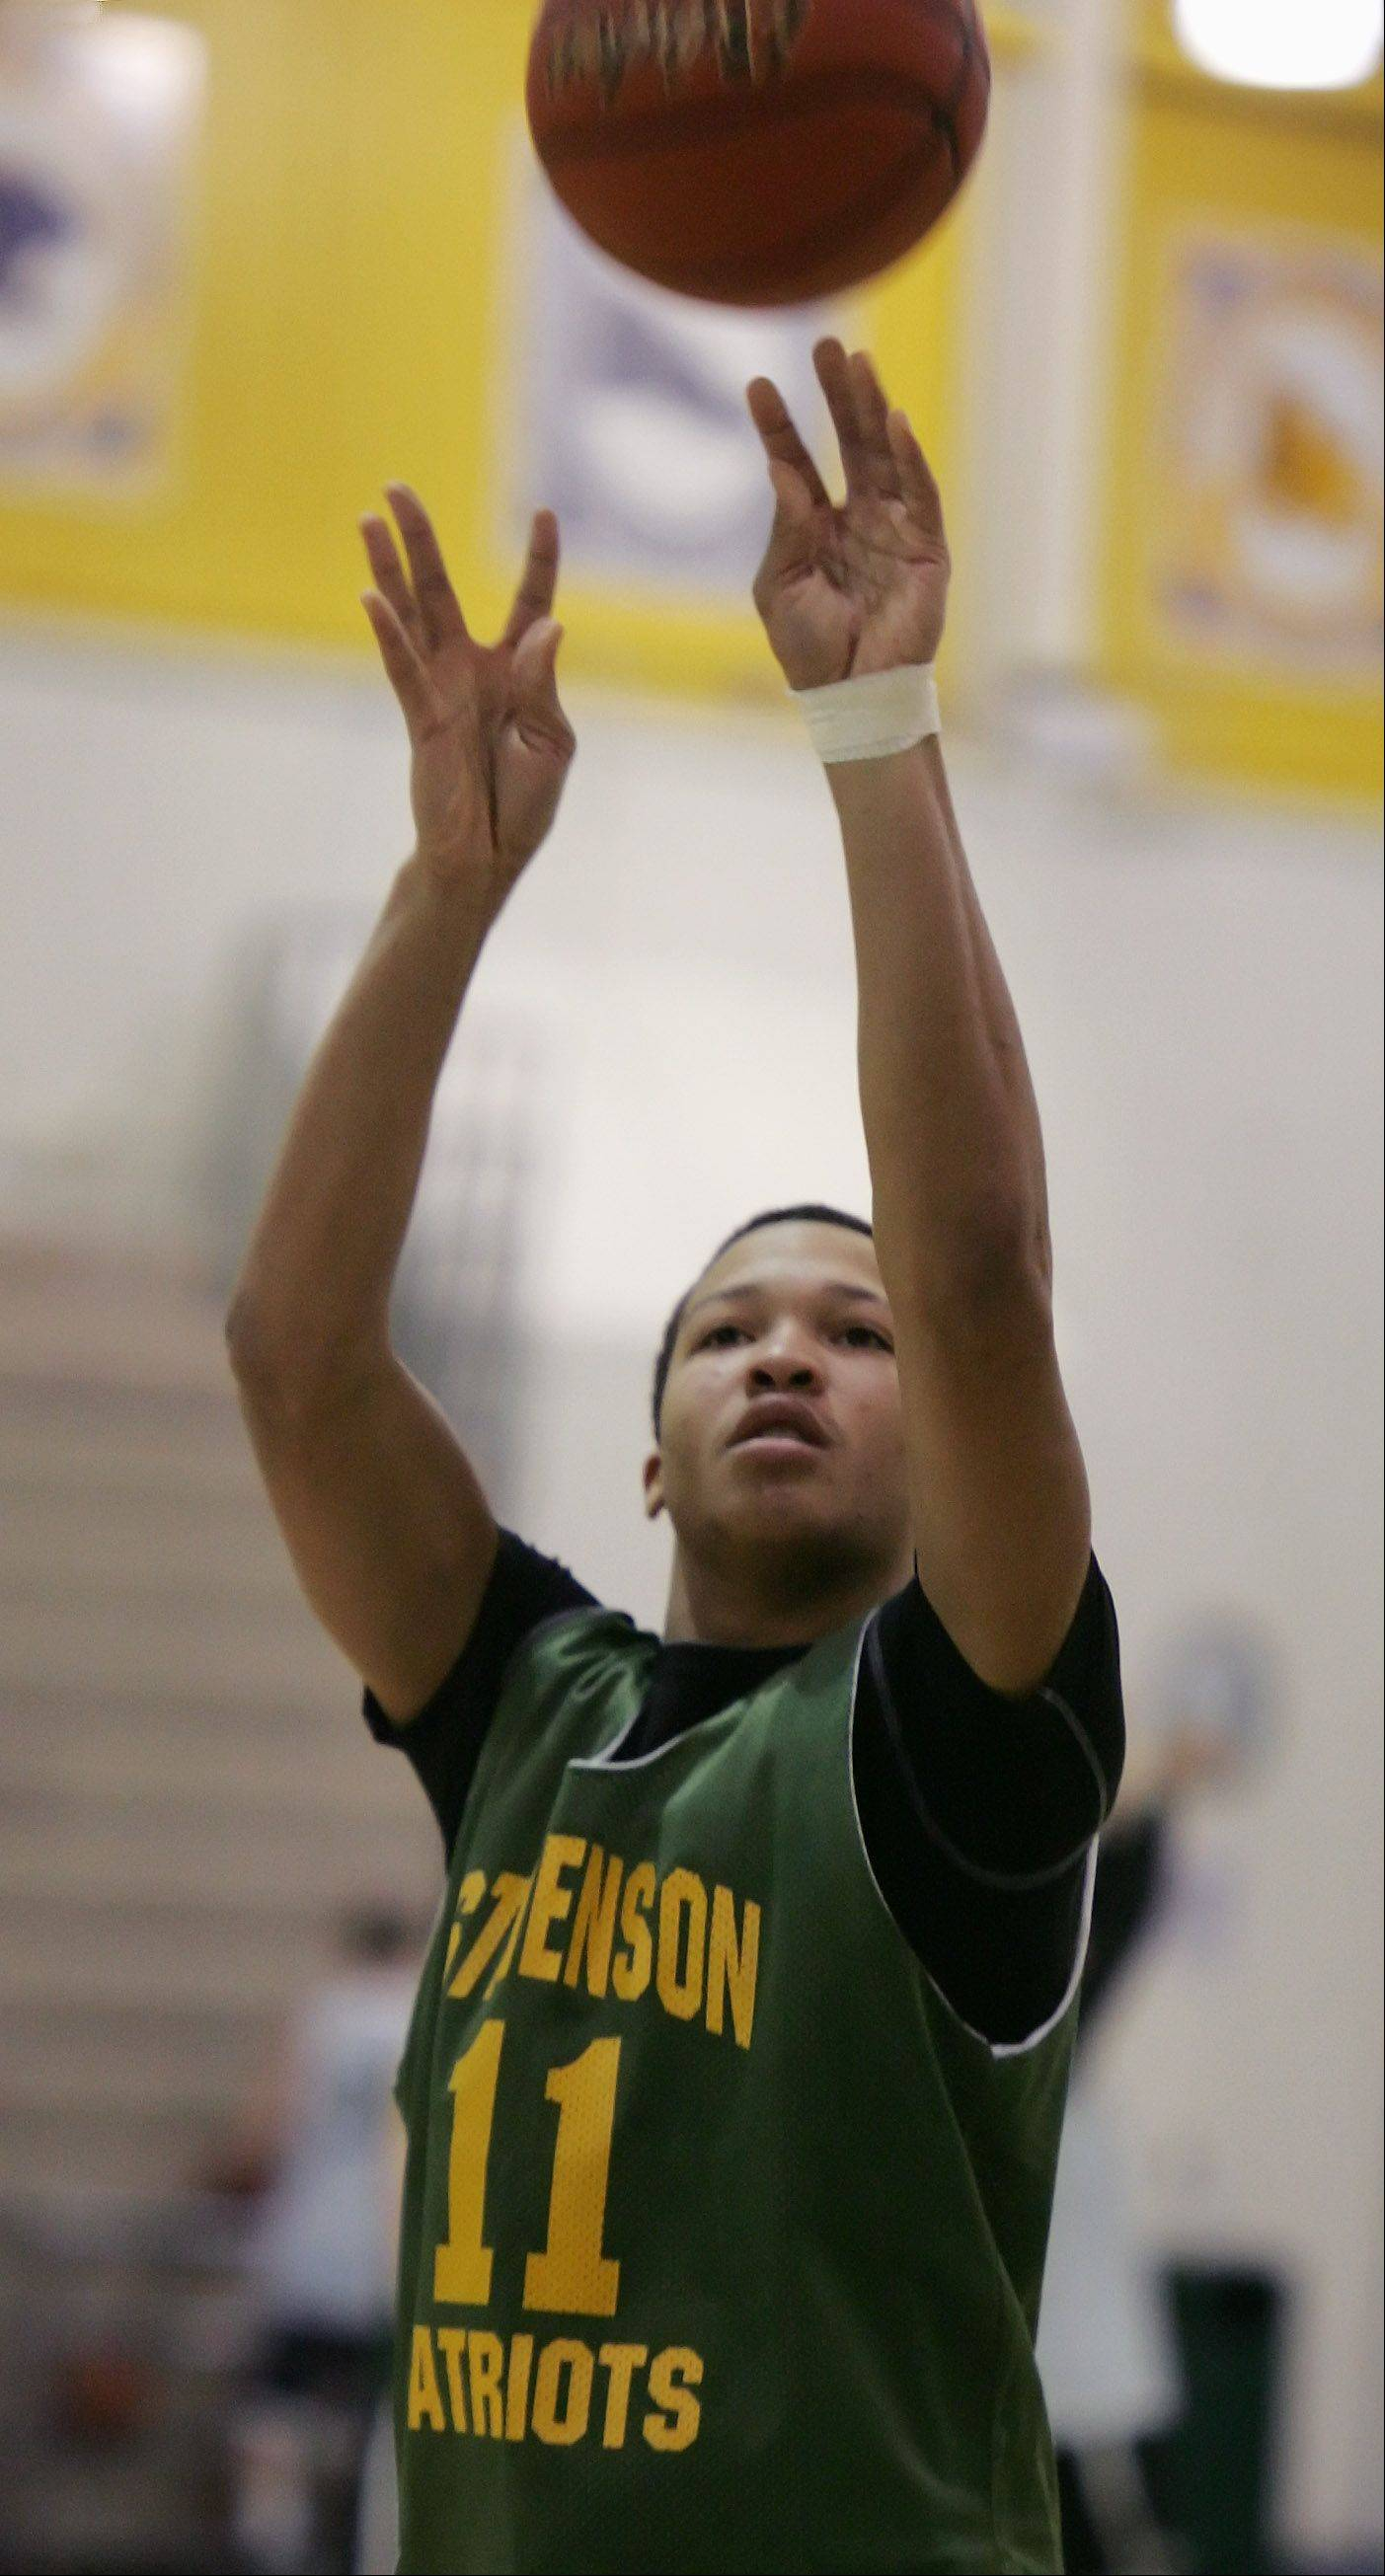 Stevenson point guard Jalen Brunson.